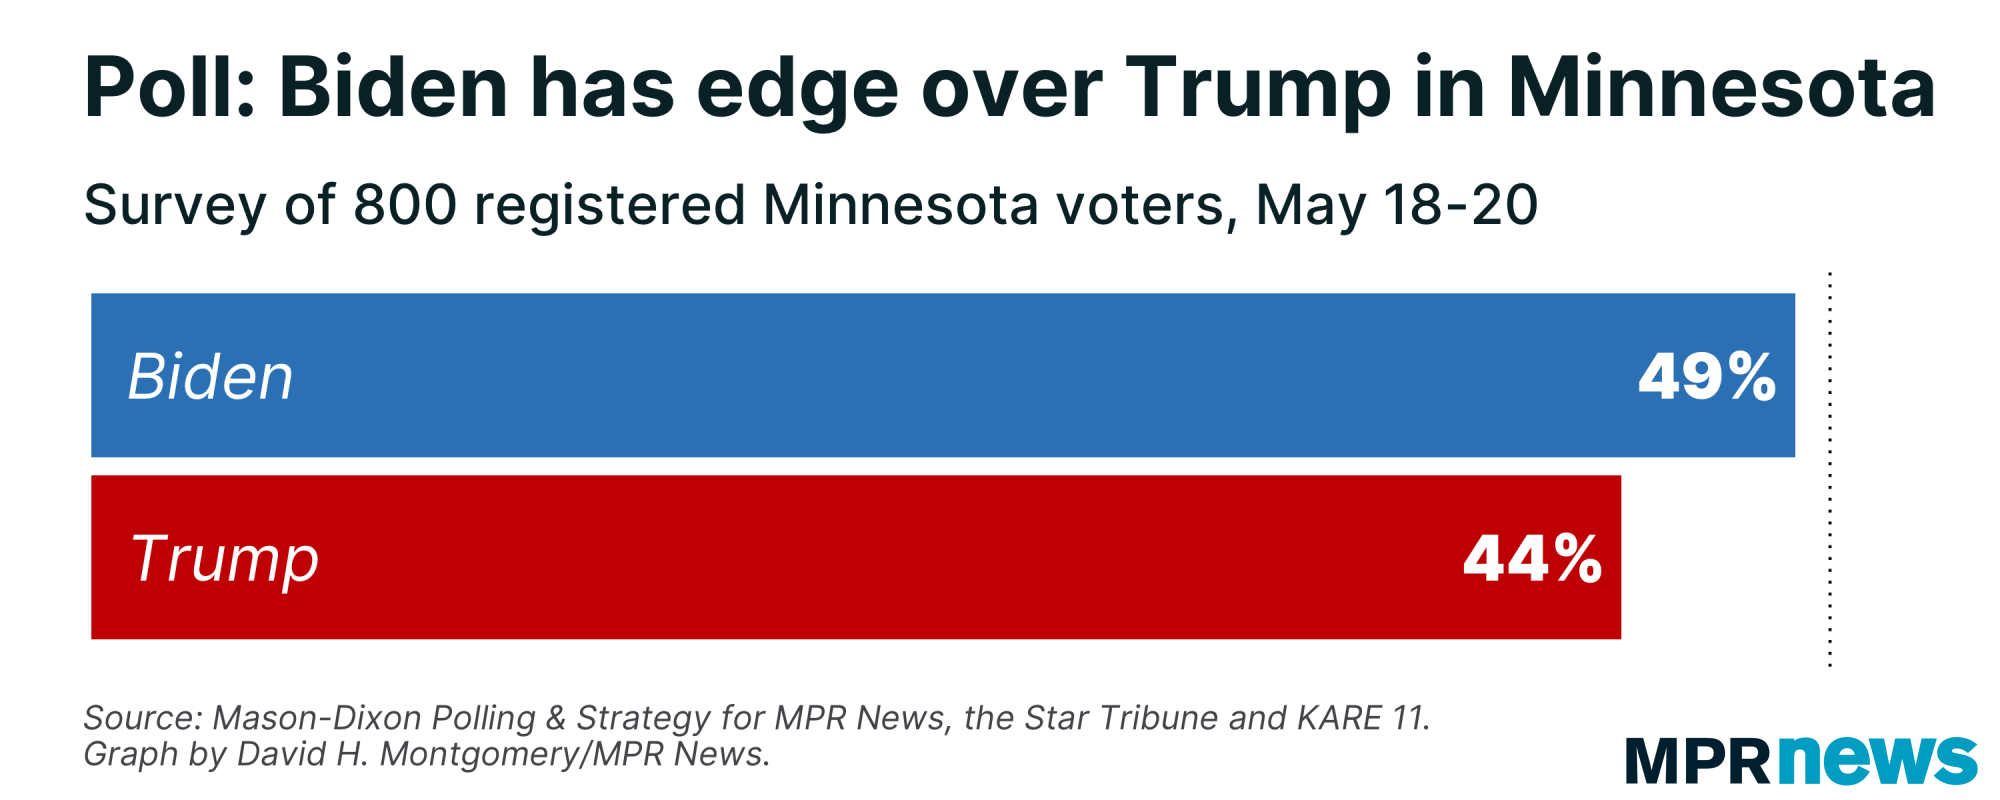 Support for Trump and Biden in Minnesota